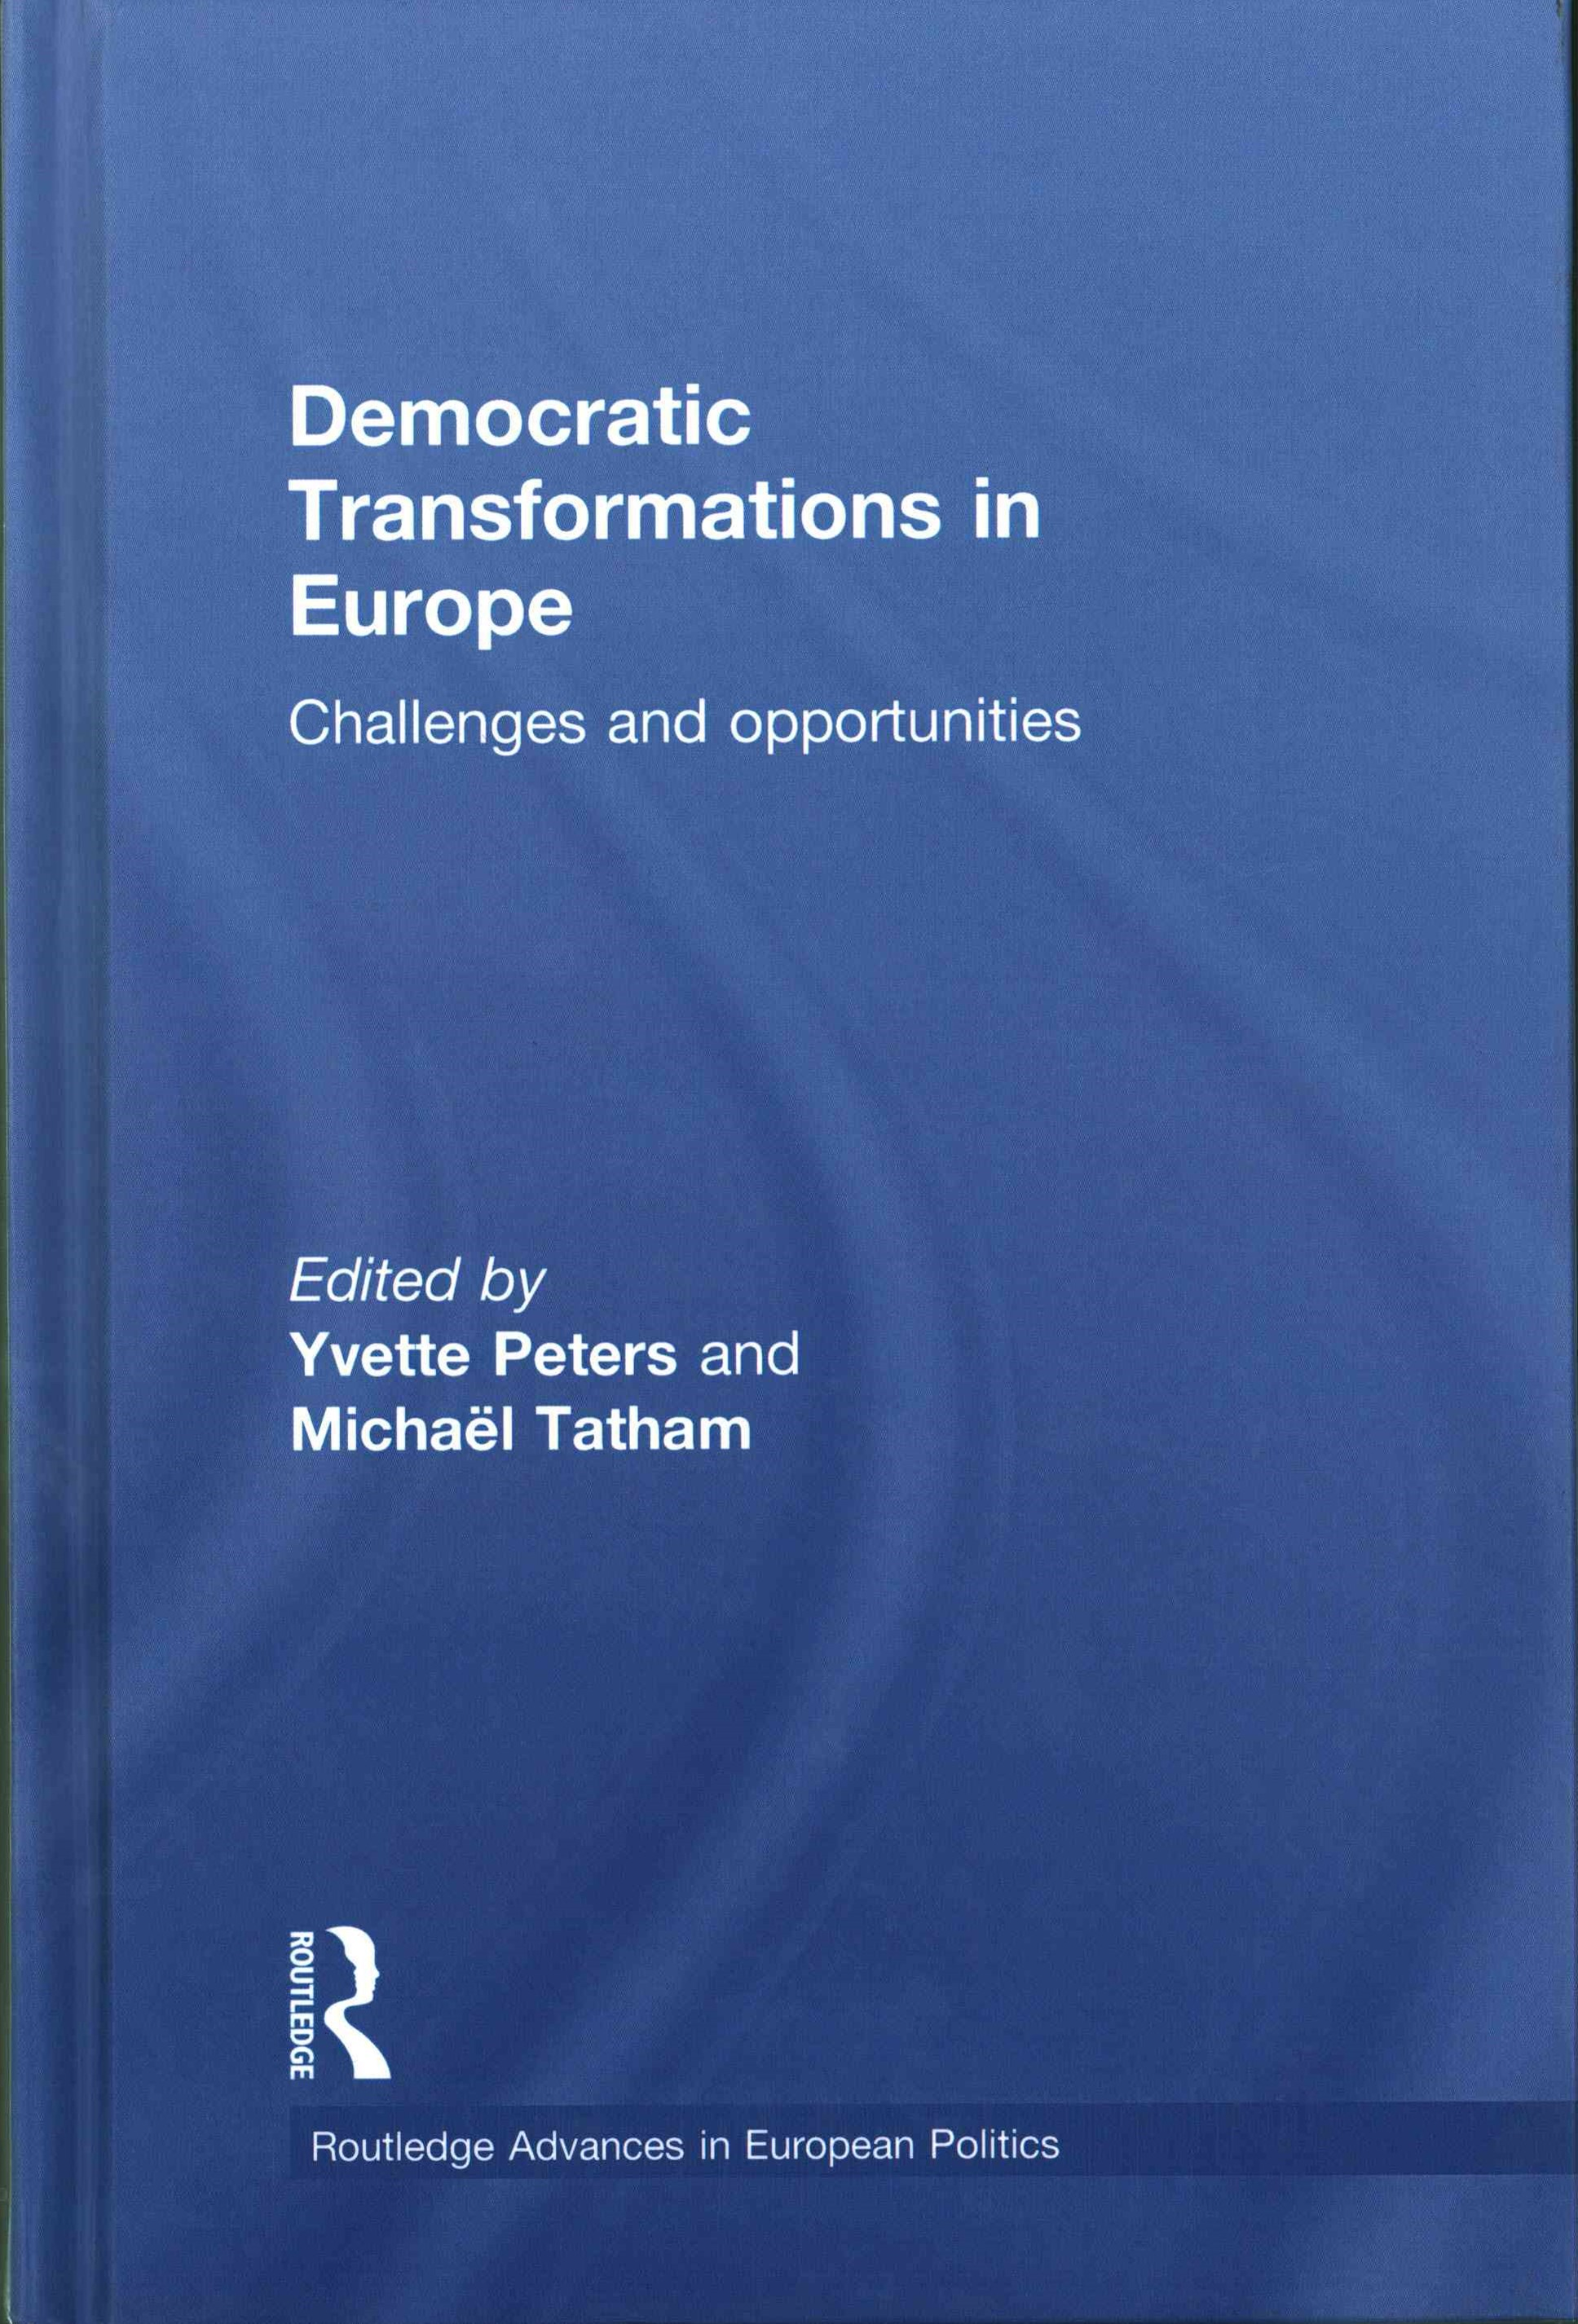 Democratic Transformations in Europe 31